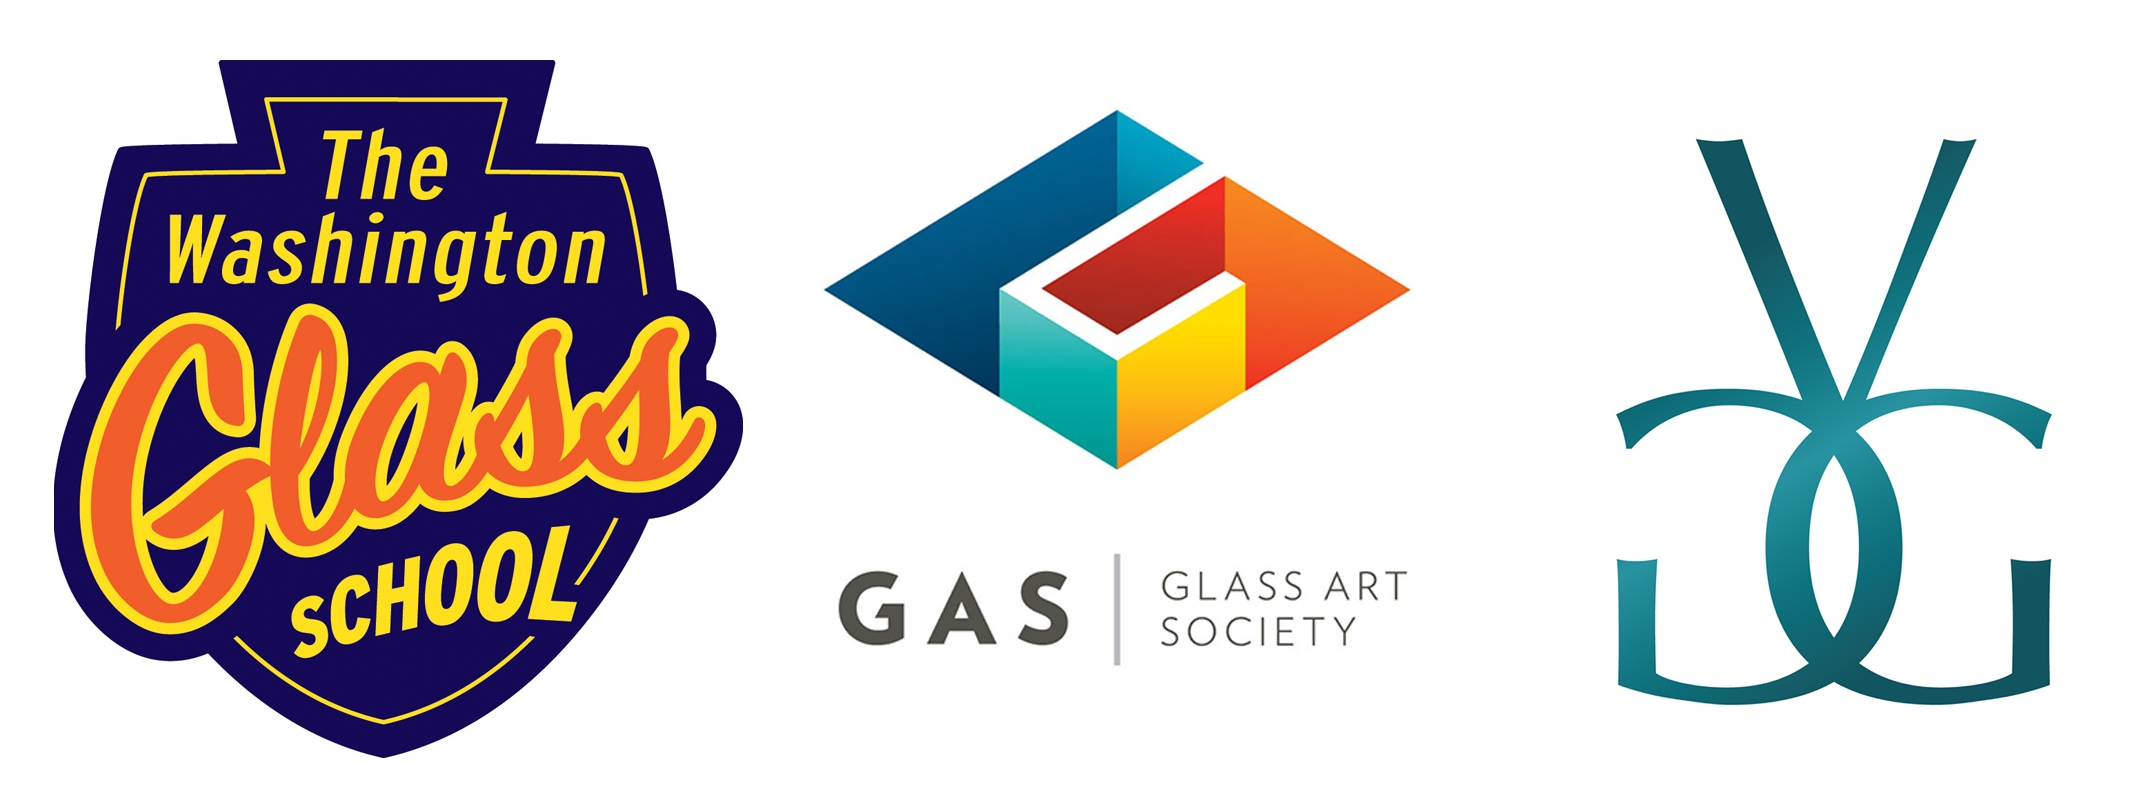 logo.embracing_narrative.glass.exhibit.GAS.norfolk.porstmouth.art_cultural_center_gallery.washington.virginia_guild.school